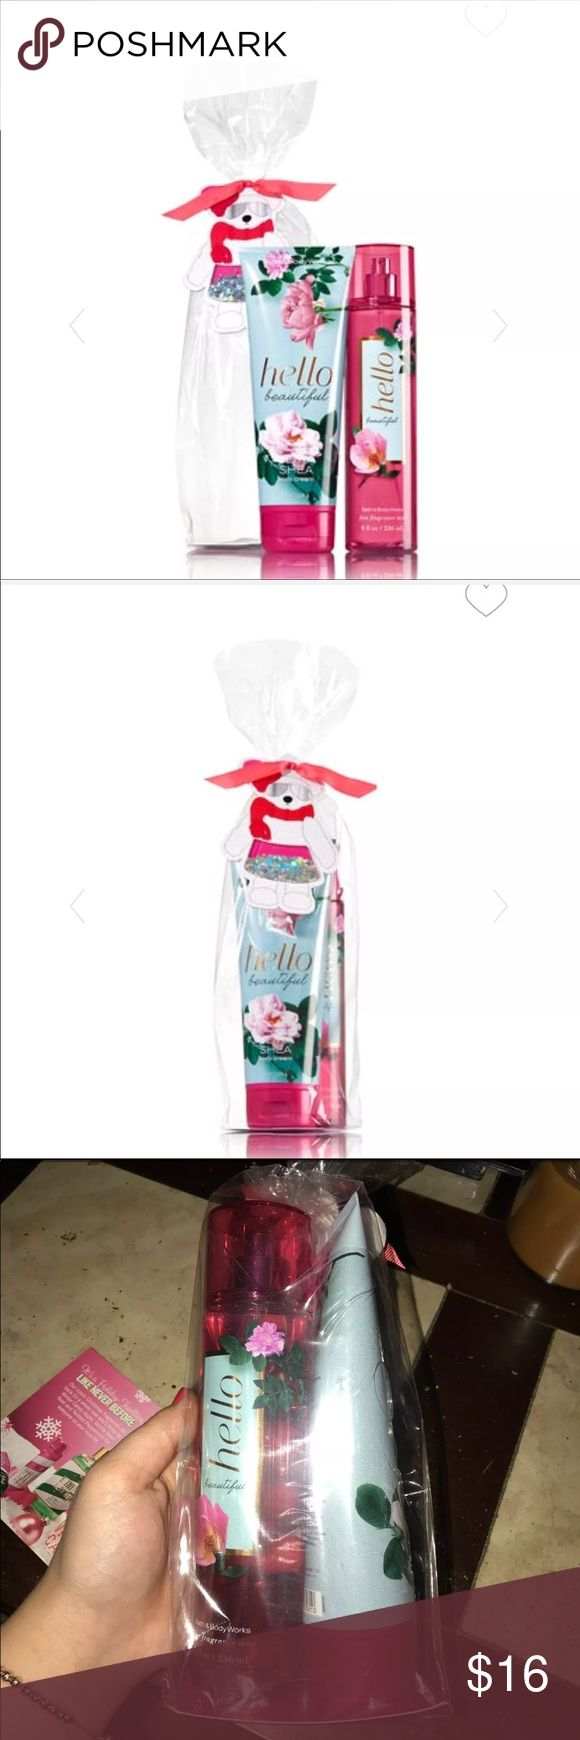 🌸Hello Beautiful gift set BRAND NEW!   Me. Sparkle Pants gift set. Bath & Body Works  Comes with a bear in confetti pants gift tag. Includes hydrating Ultra Shea Body Cream (8 oz) amp; Long Lasting Fine Fragrance Mist (8 fl oz).  *SOLD OUT IN STORES* Bath and Body Works Other